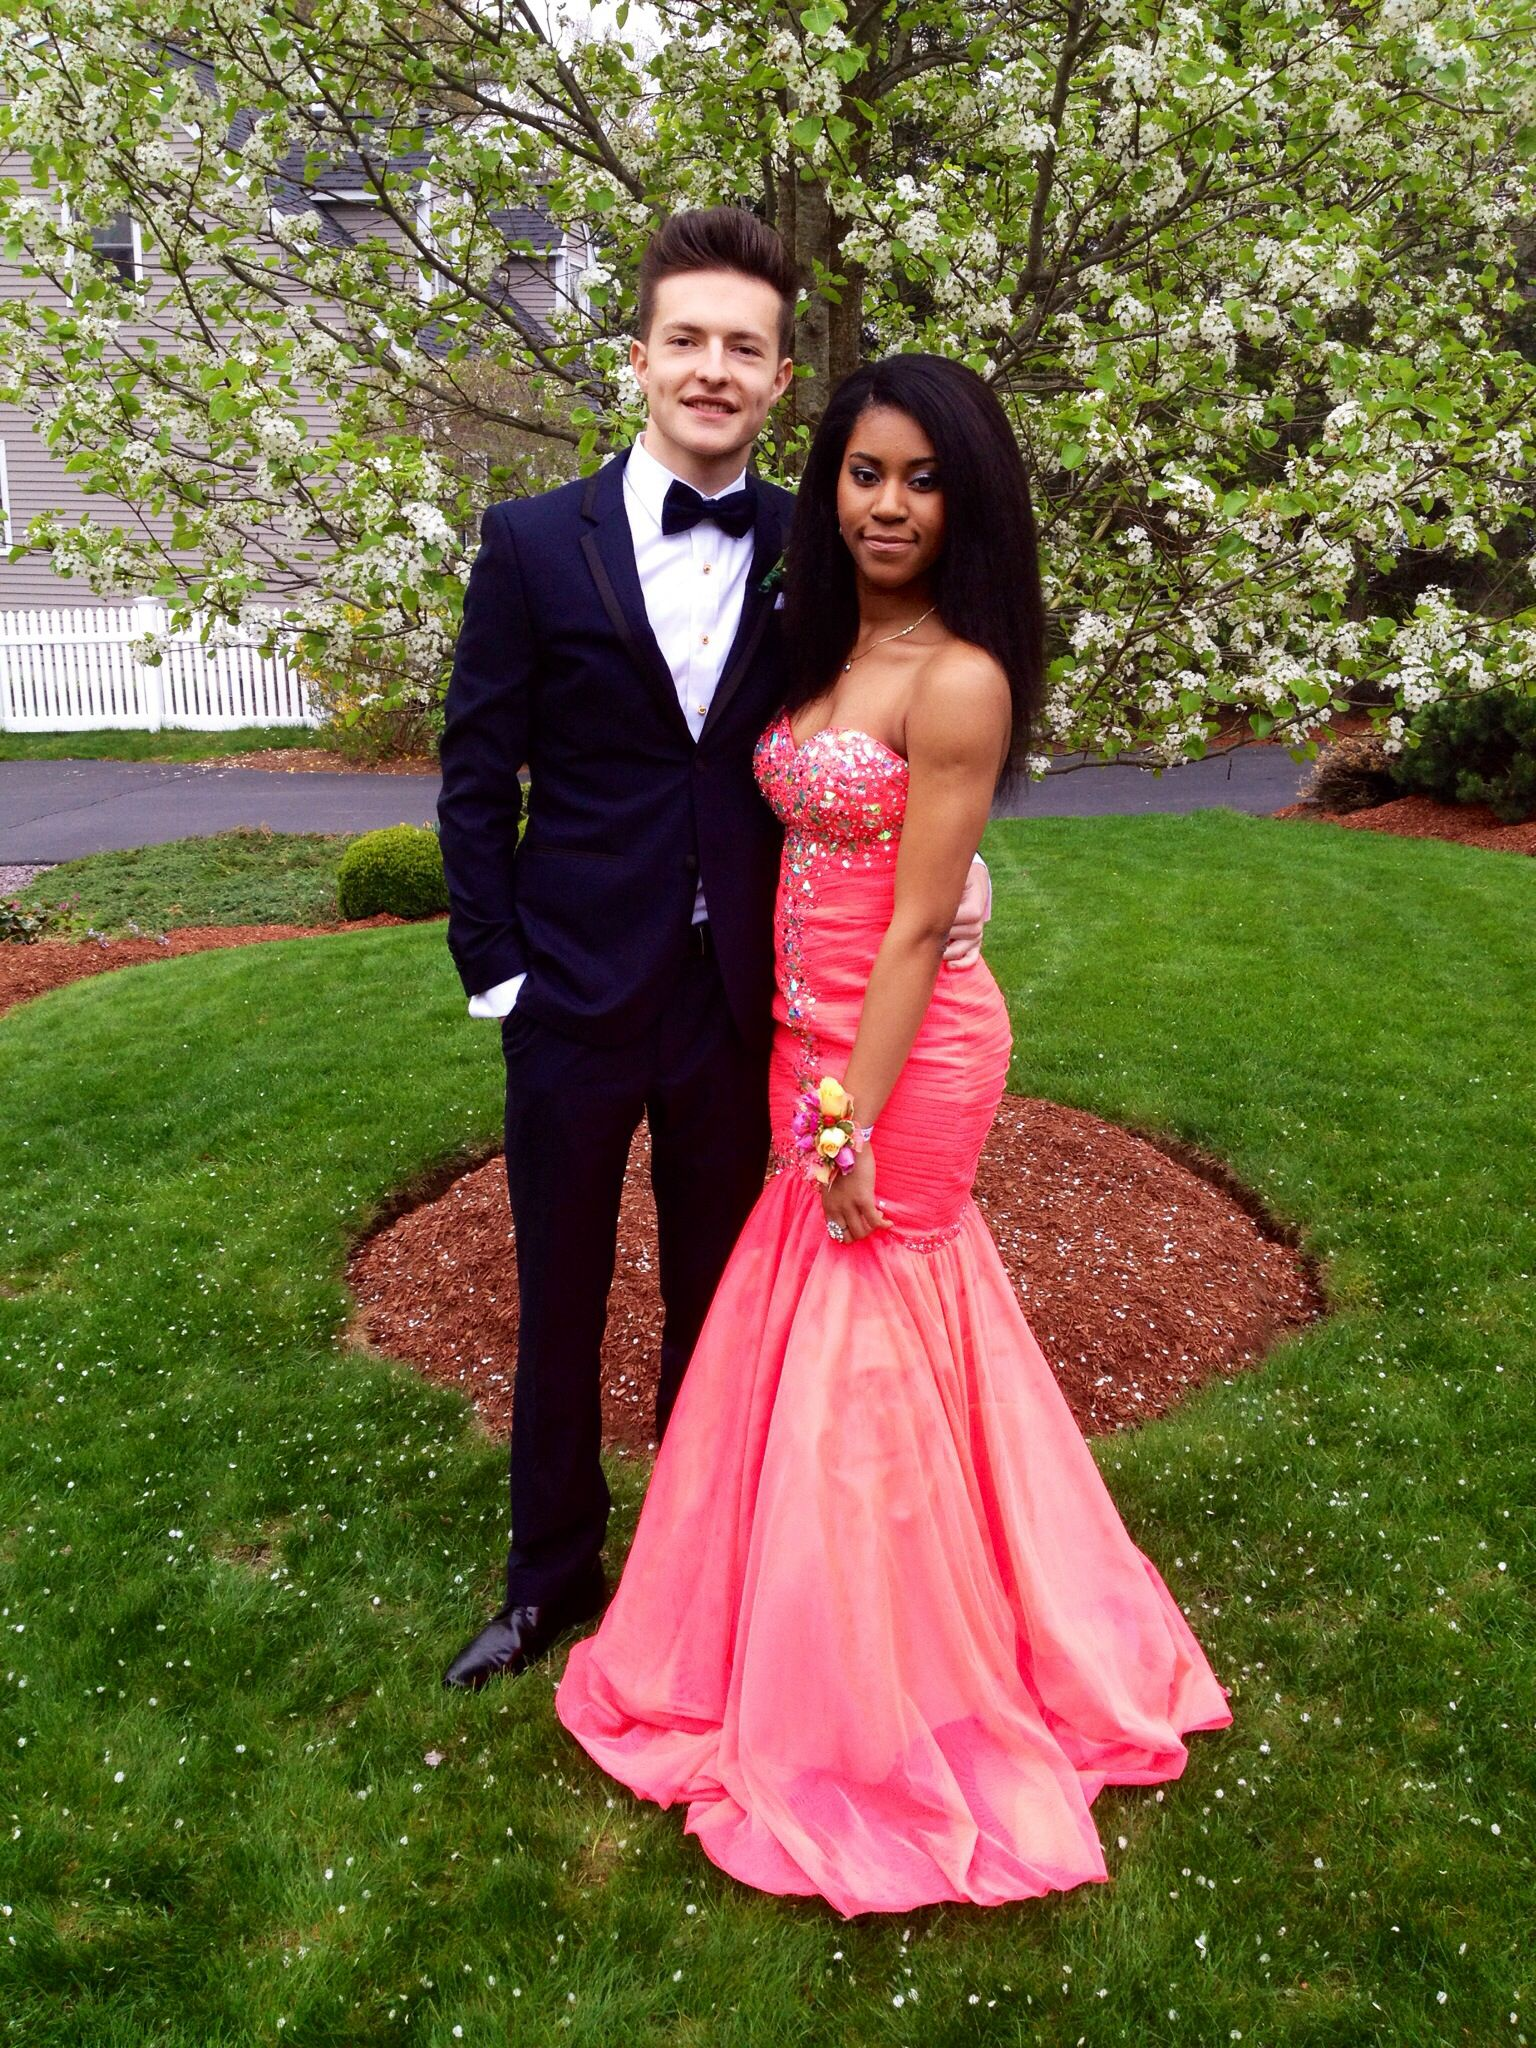 No interracial couples at prom galleries 491